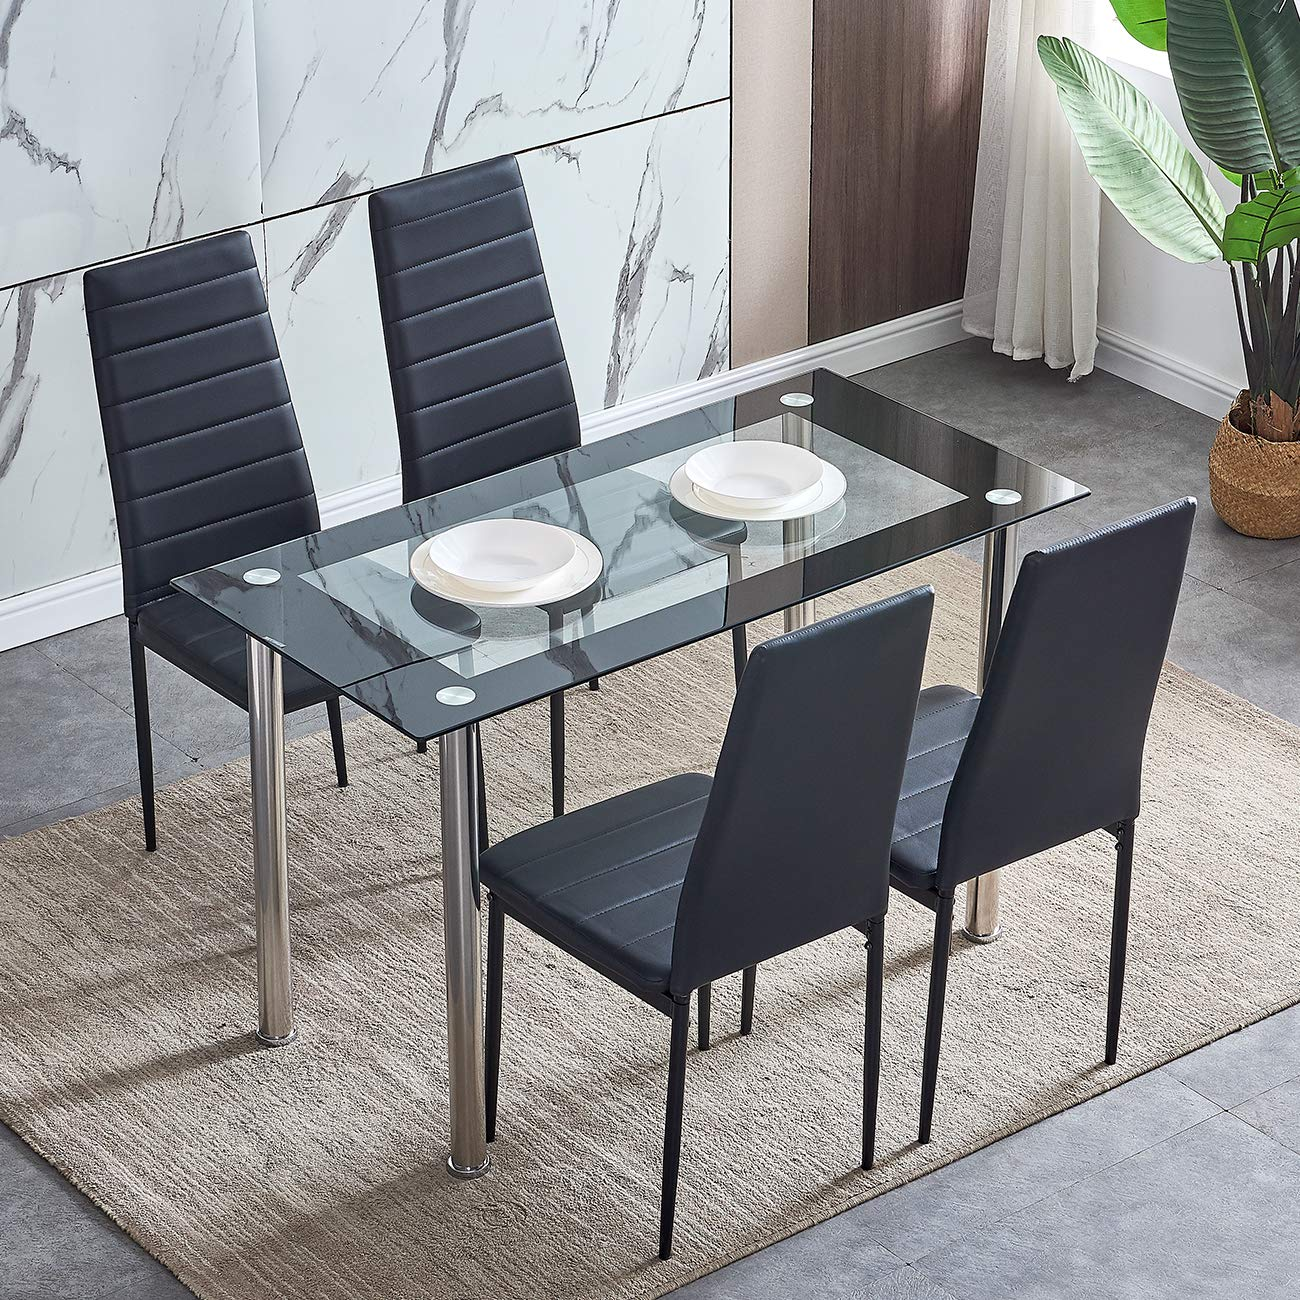 Homesailing Contemporary Black Glass Dining Room Table With 4 Chairs Set 5 Pieces Kitchen Glass Tempered Table And 4 Faux Leather Chairs Set Black For Small Apartment 4 People Usage Buy Online